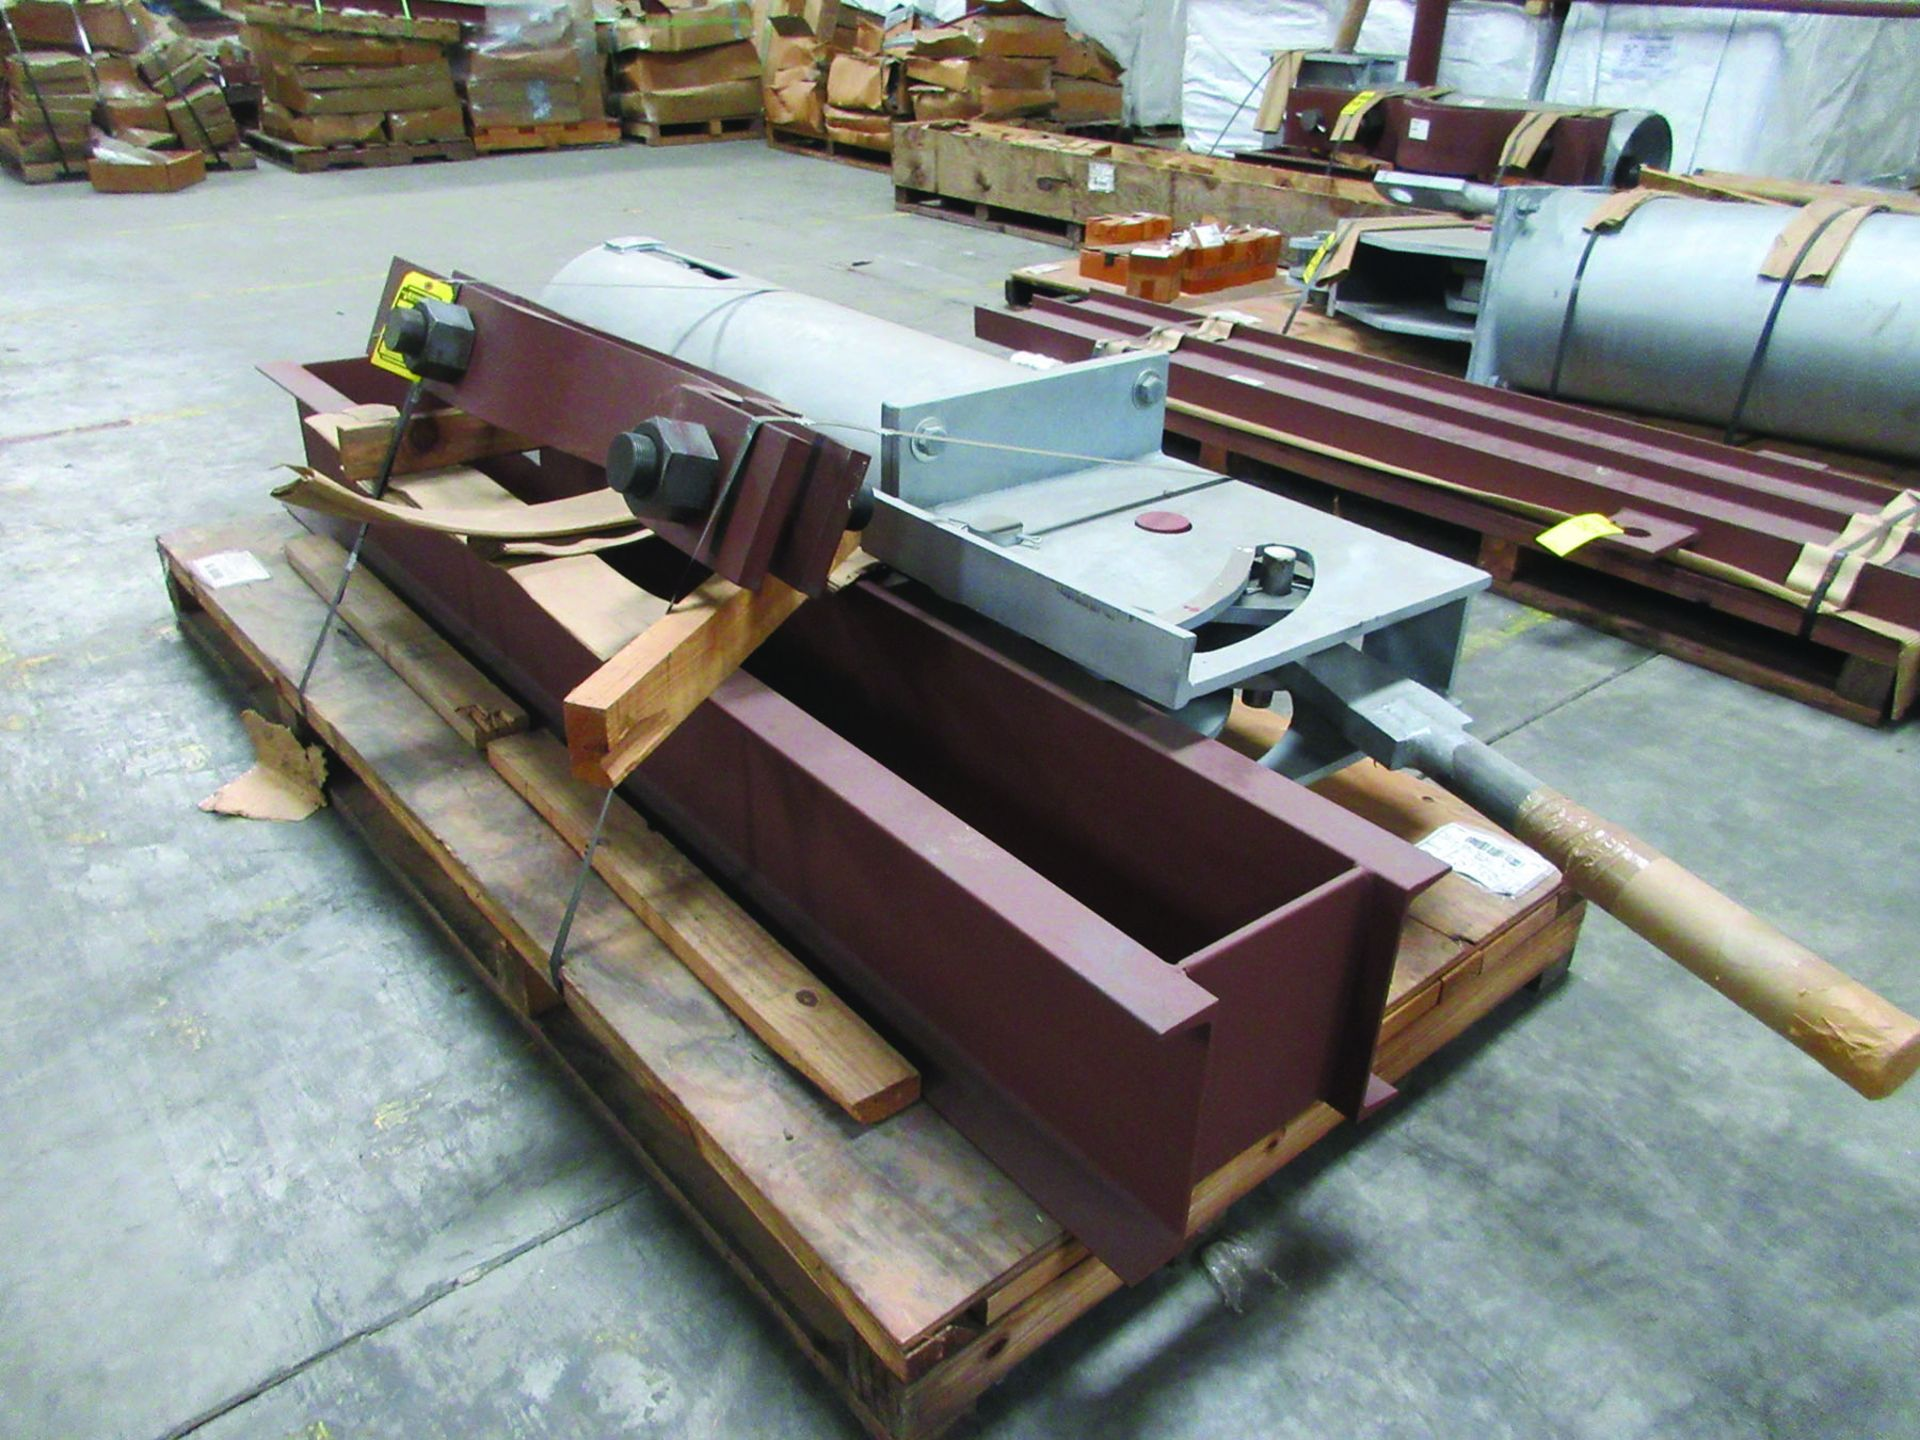 LARGE LOT OF STRUCTURAL STEEL & SPRING CANS, ANGLE IRON, PLATE BRACKETS, BRACING, GRID C5 - Image 2 of 21